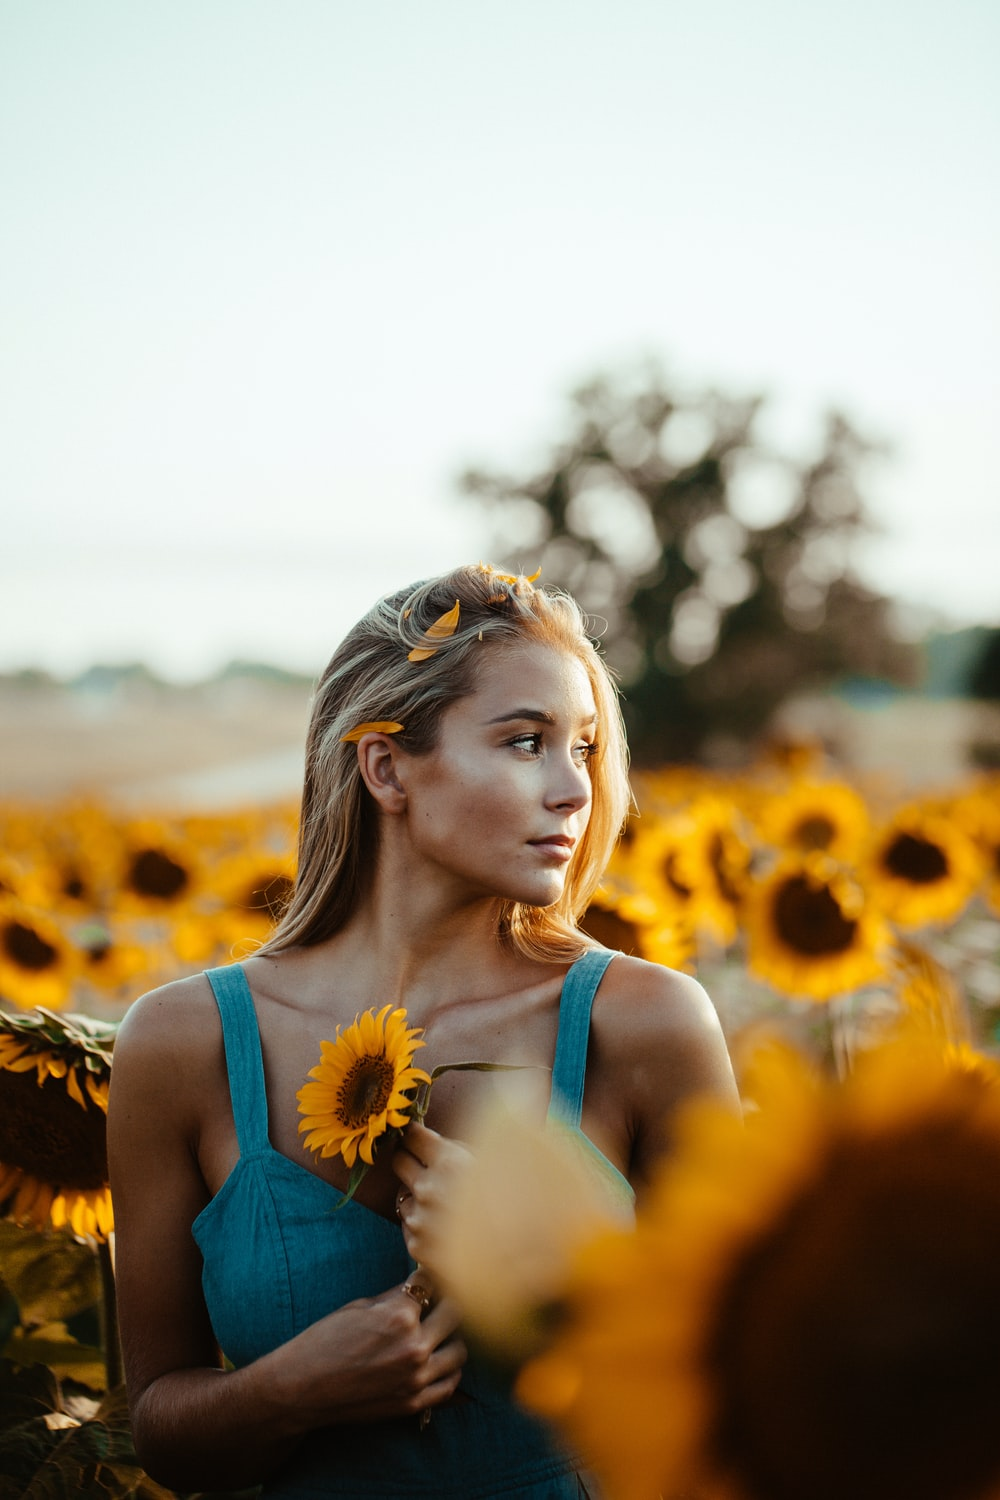 selective focus photo of woman holding sunflower surrounded by sunflowers